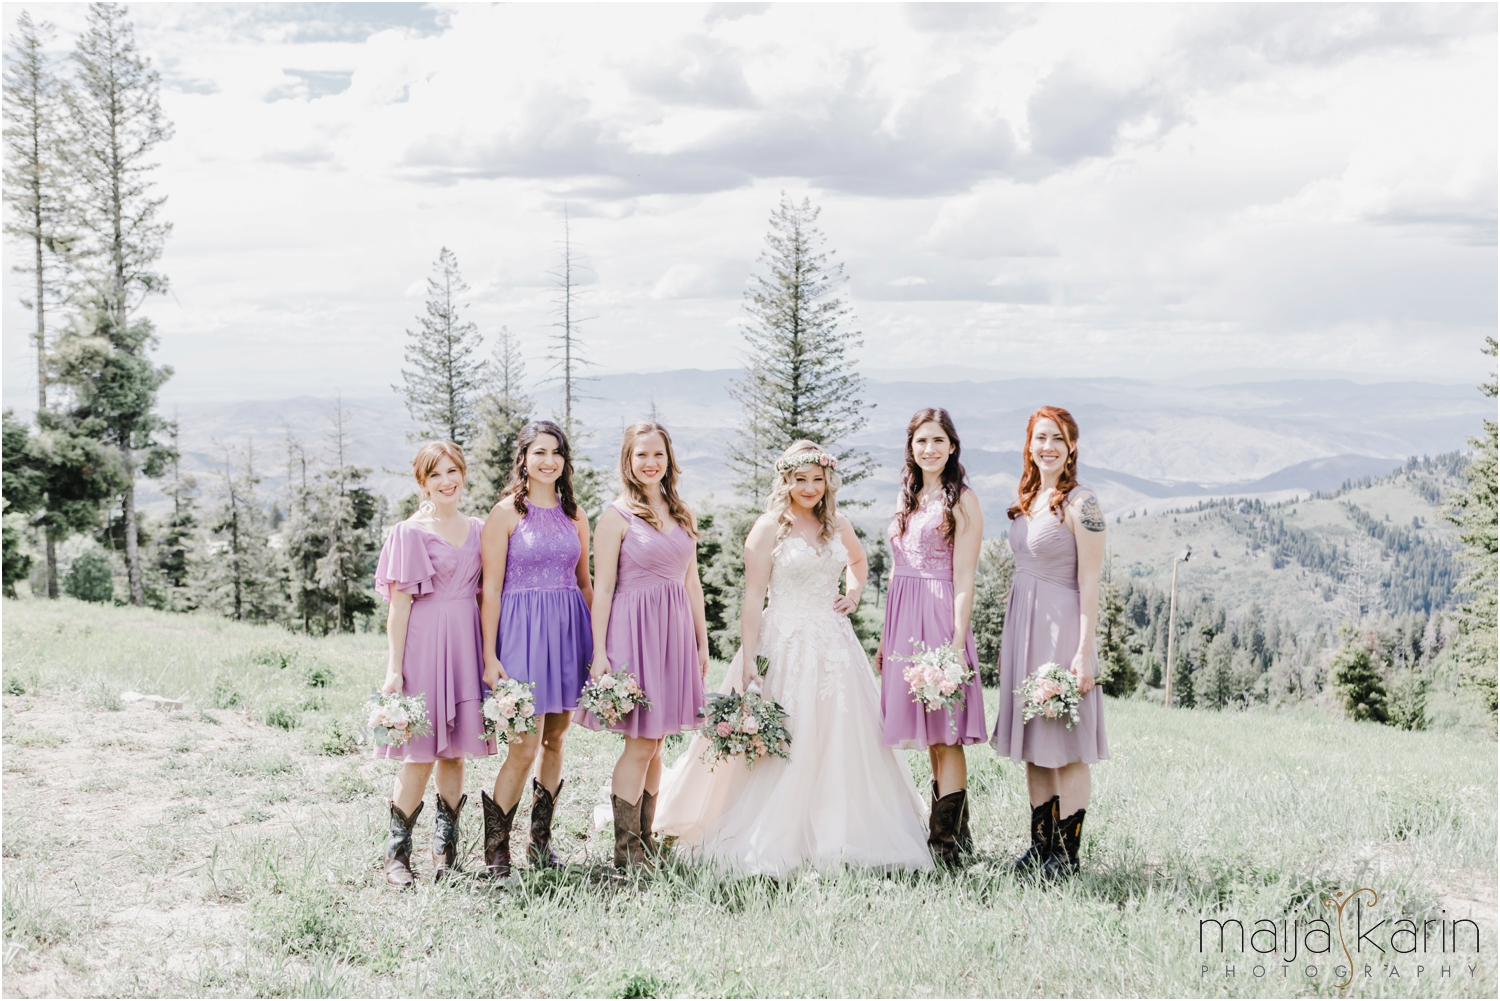 Bogus-Basin-Wedding-Maija-Karin-Photography_0020.jpg